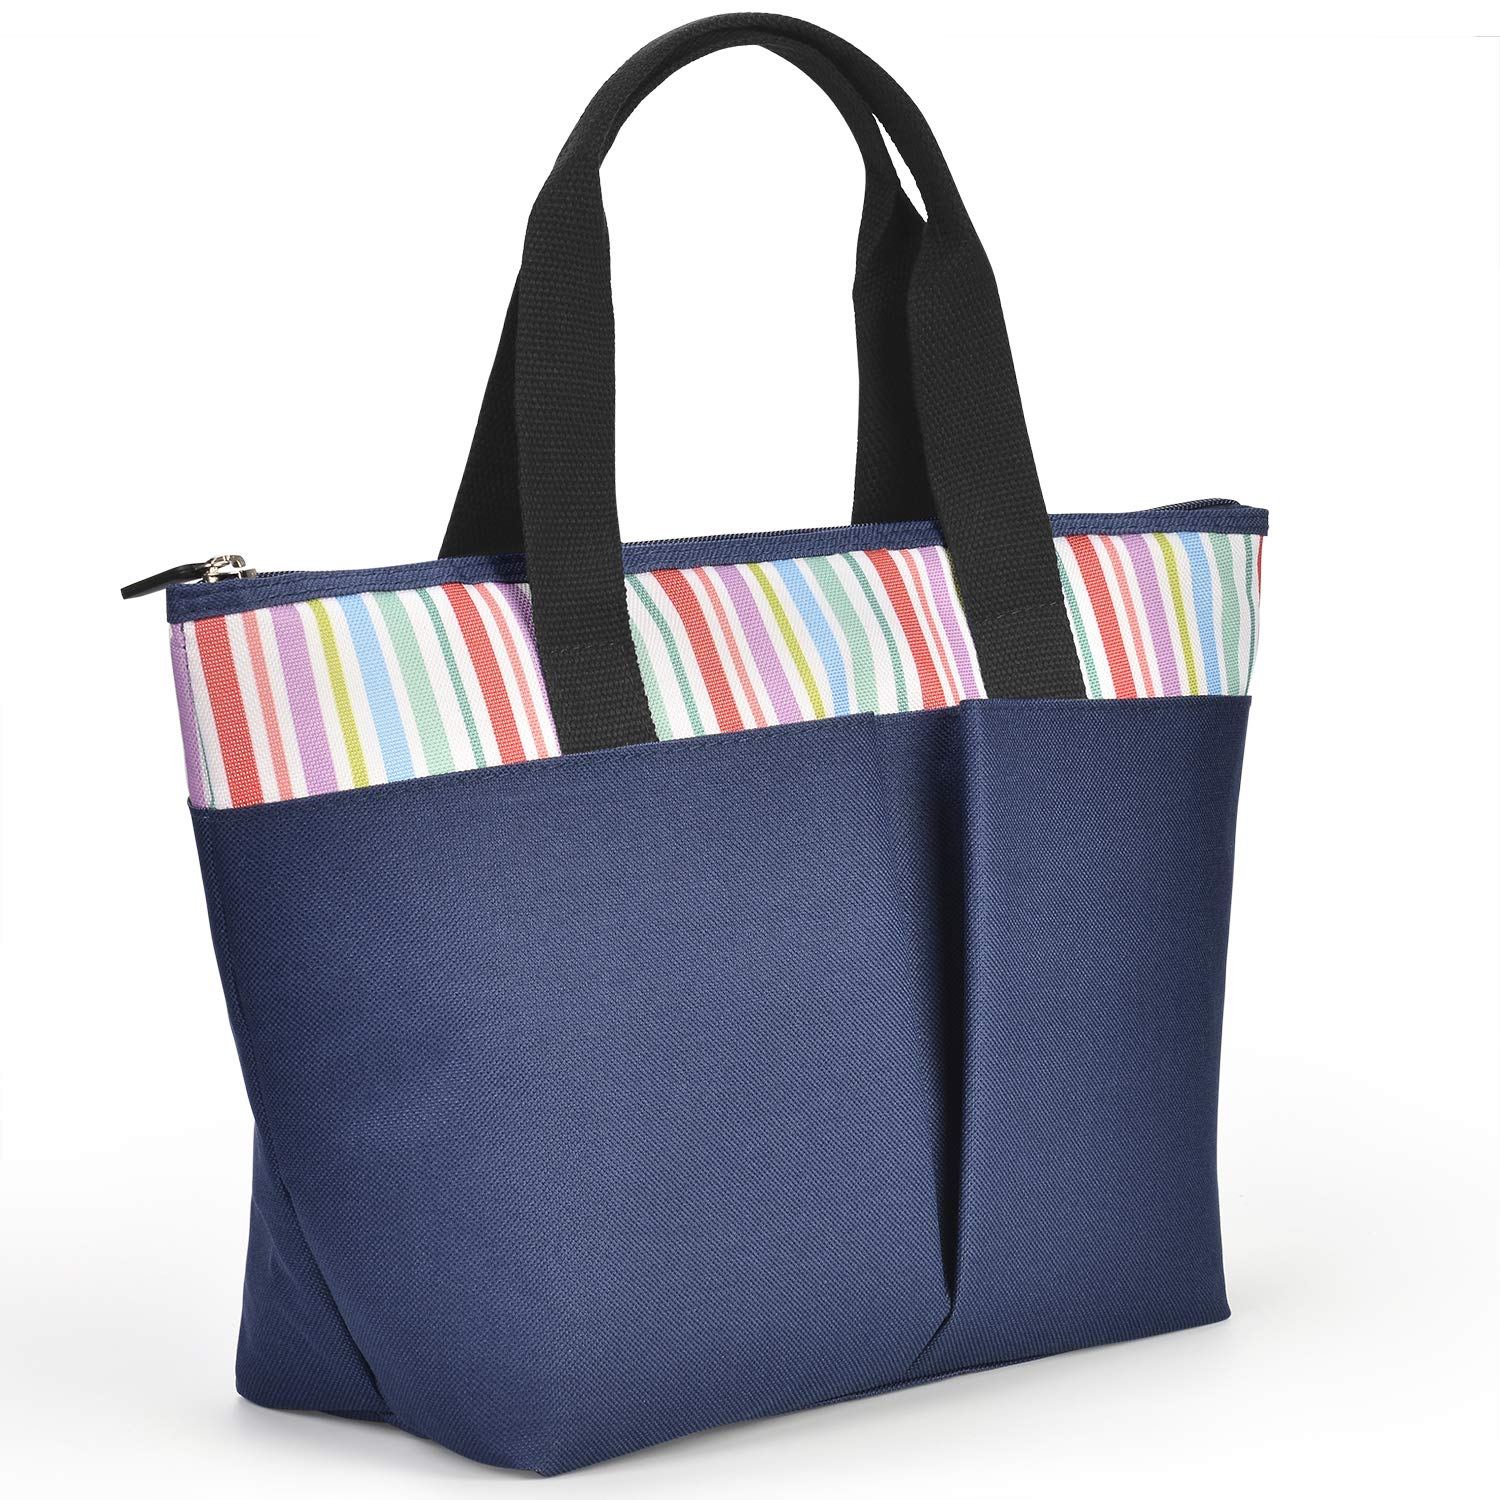 LEADO Insulated Large Lunch Tote Bag for Women Girls Adults, Reusable Lunch Handbag Large Capacity Zippered Meal Prep Cooler Thermal Lunch Box, Striped Navy Blue